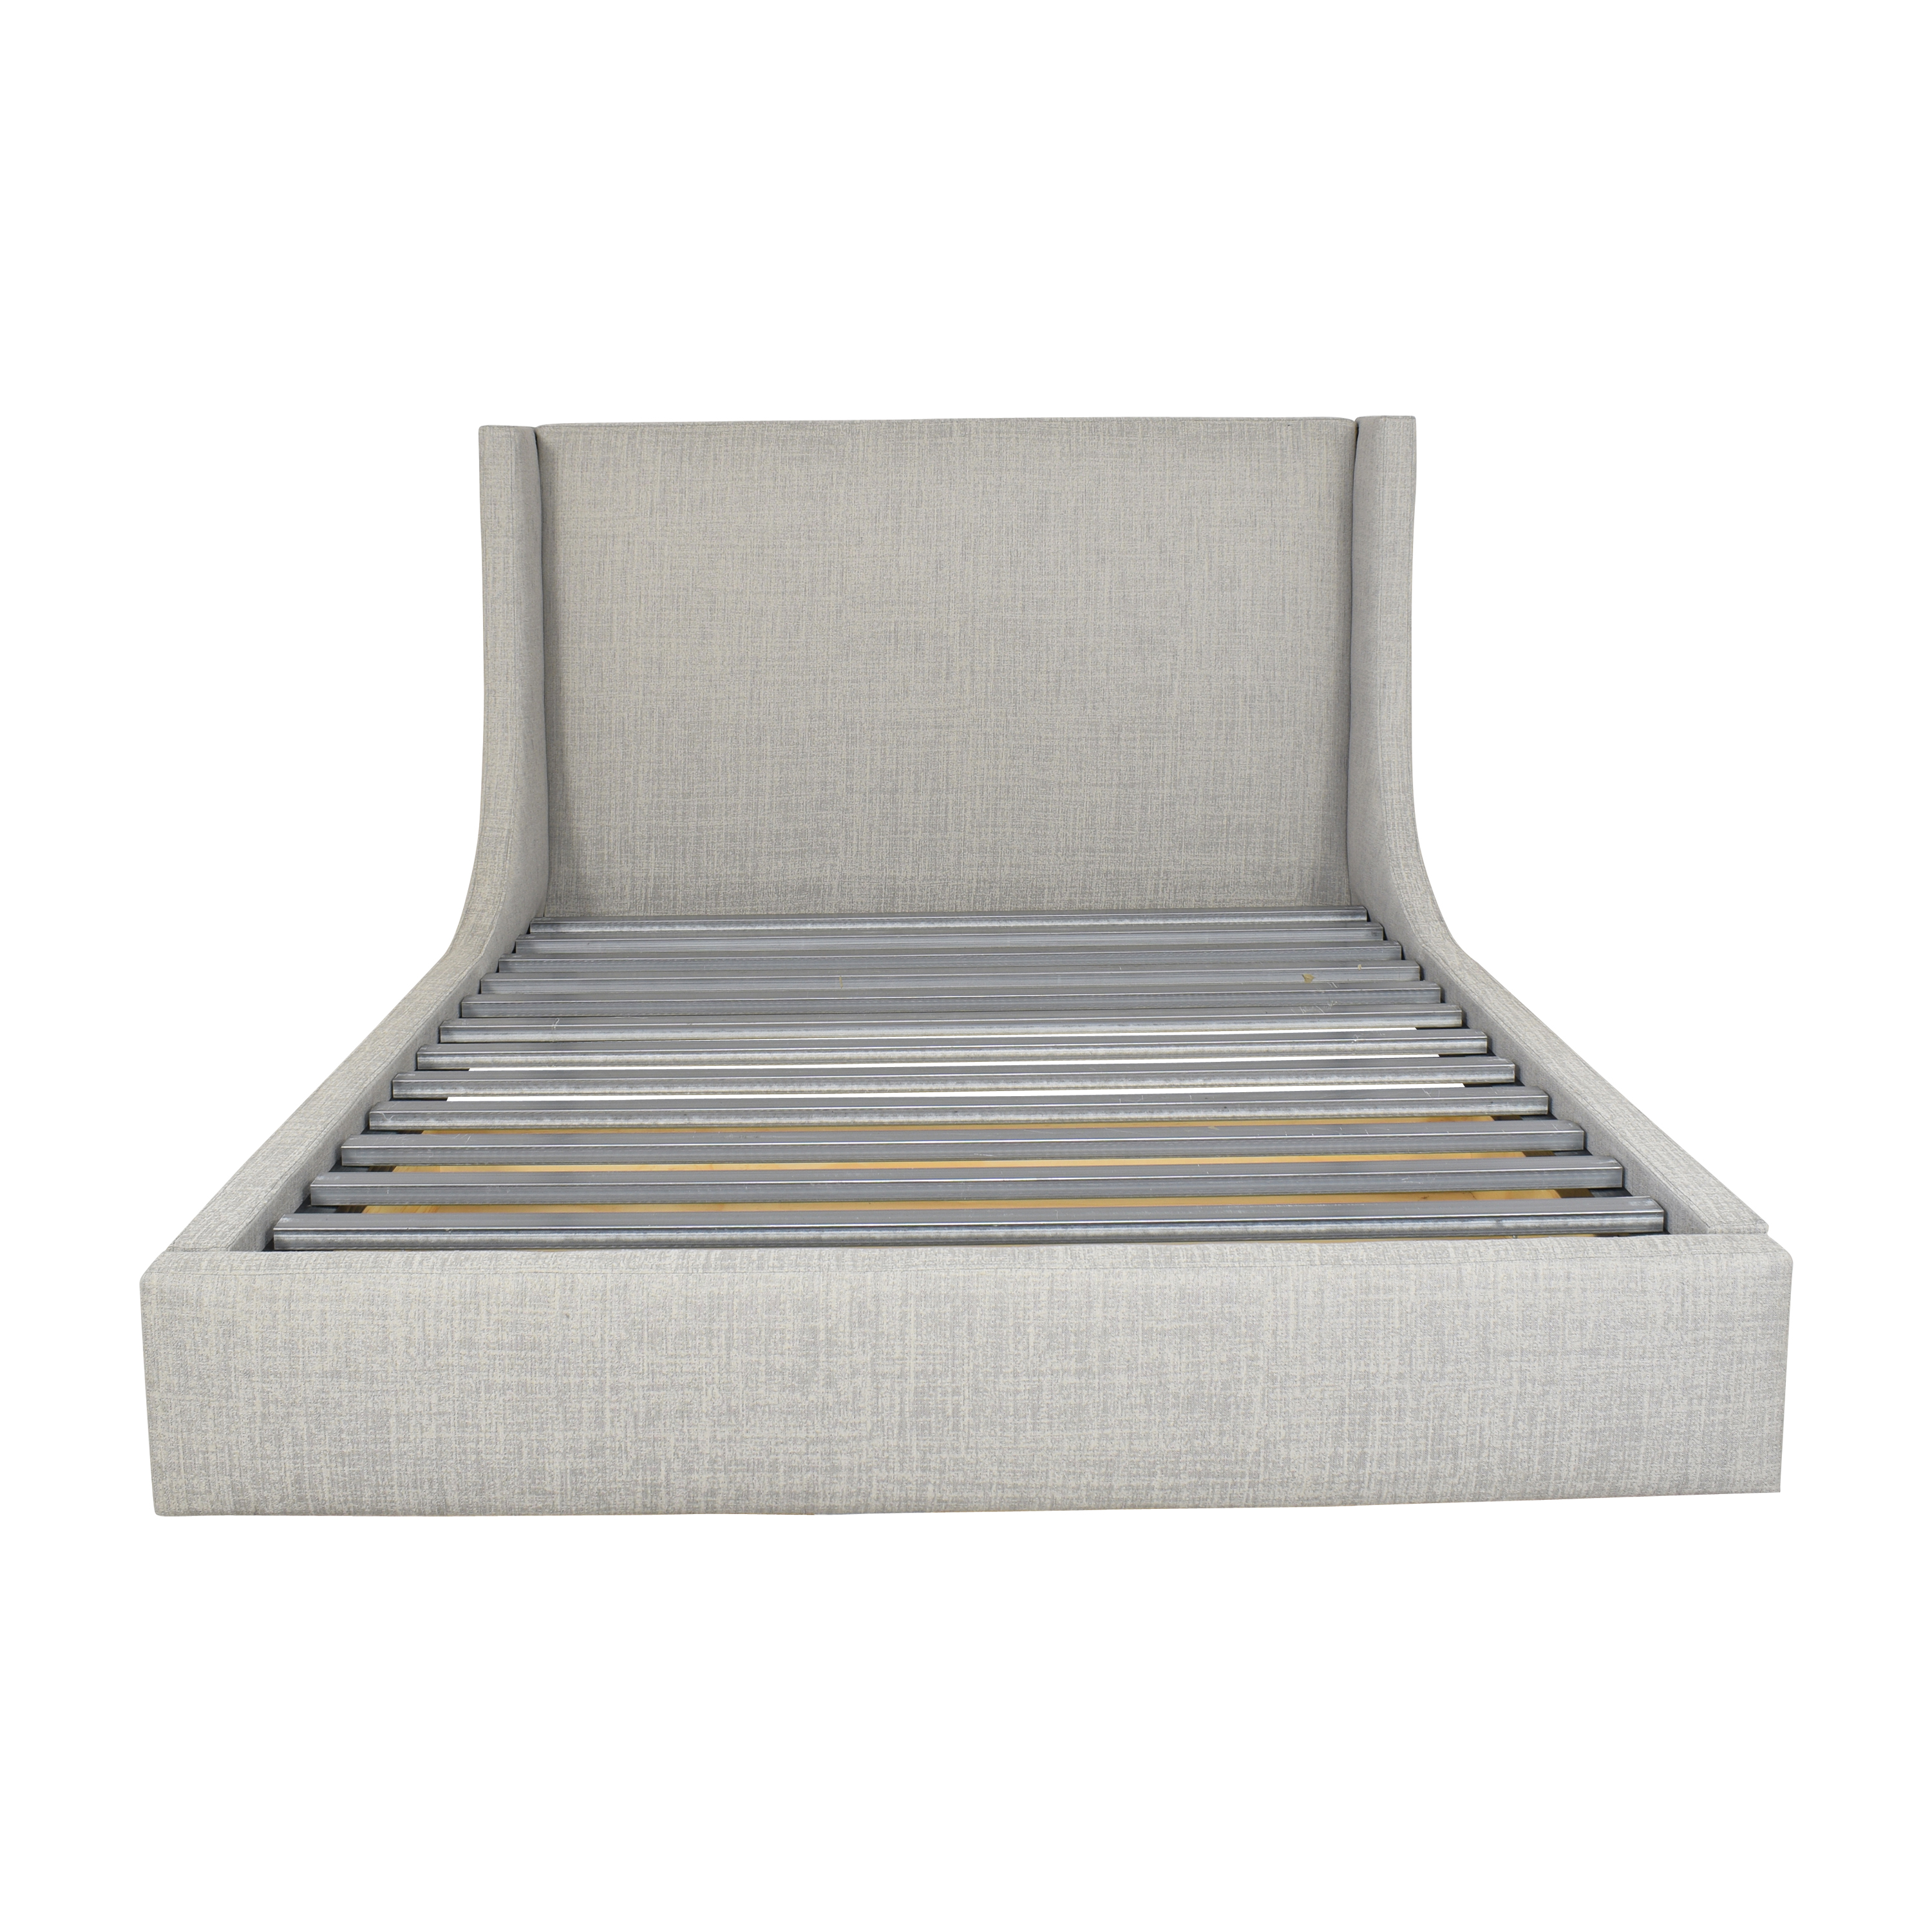 Room & Board Room & Board Marlo Queen Bed with Storage Drawer ct